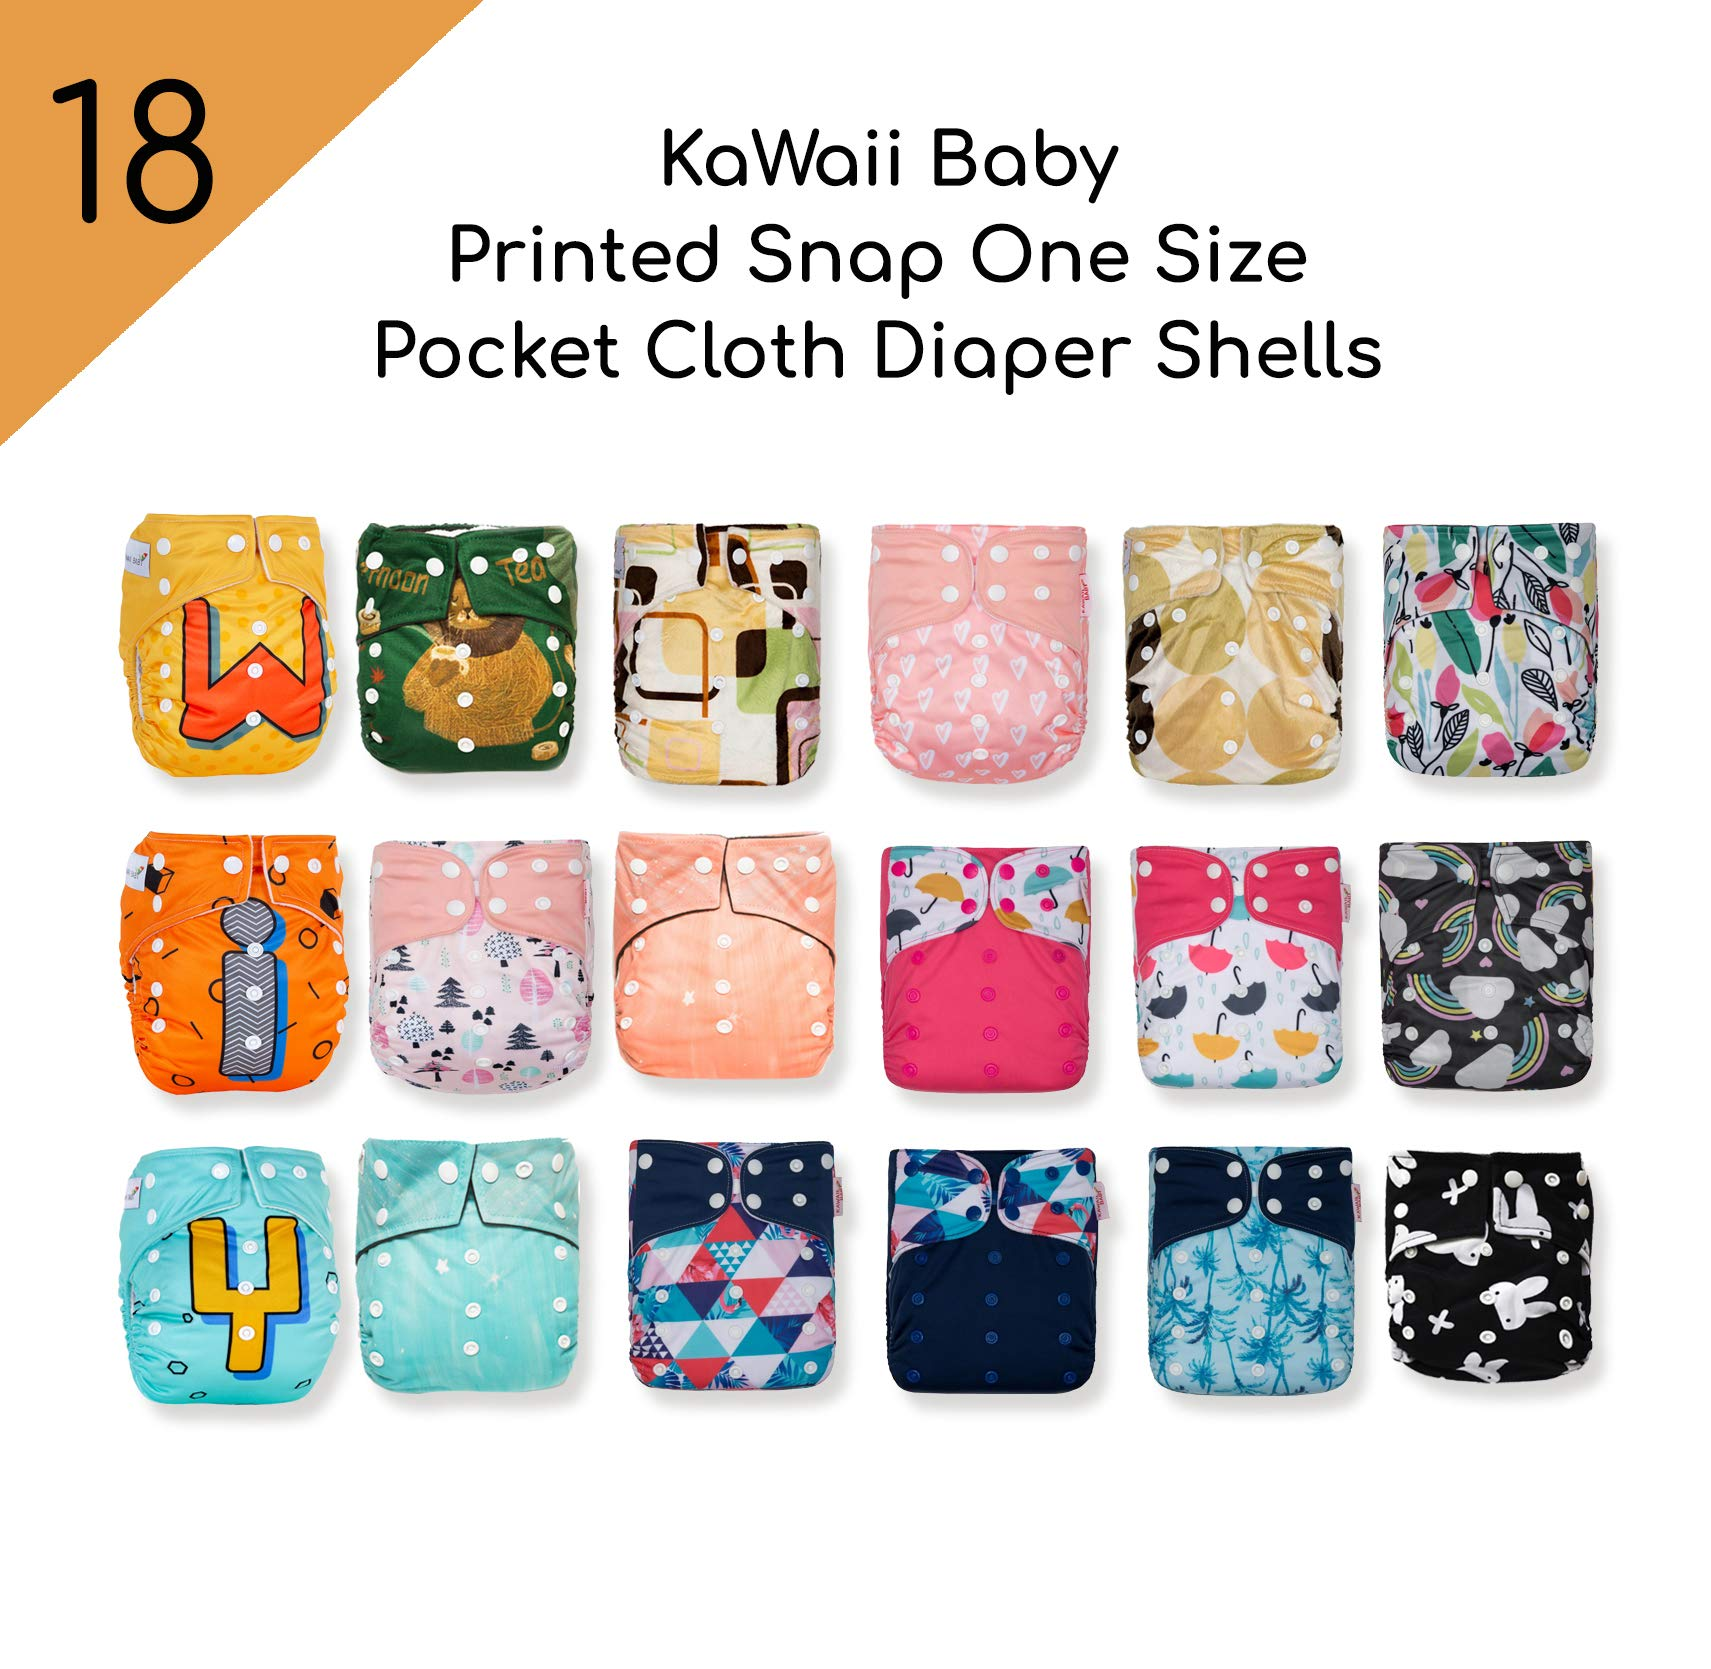 KaWaii Baby Pack of 18 Shells One Size Printed Snap Adjustable Leak-Proof Panel Washable Pocket Diaper Shells for 8-36 lbs| Reusable| Waterproof by Kawaii Baby (Image #1)